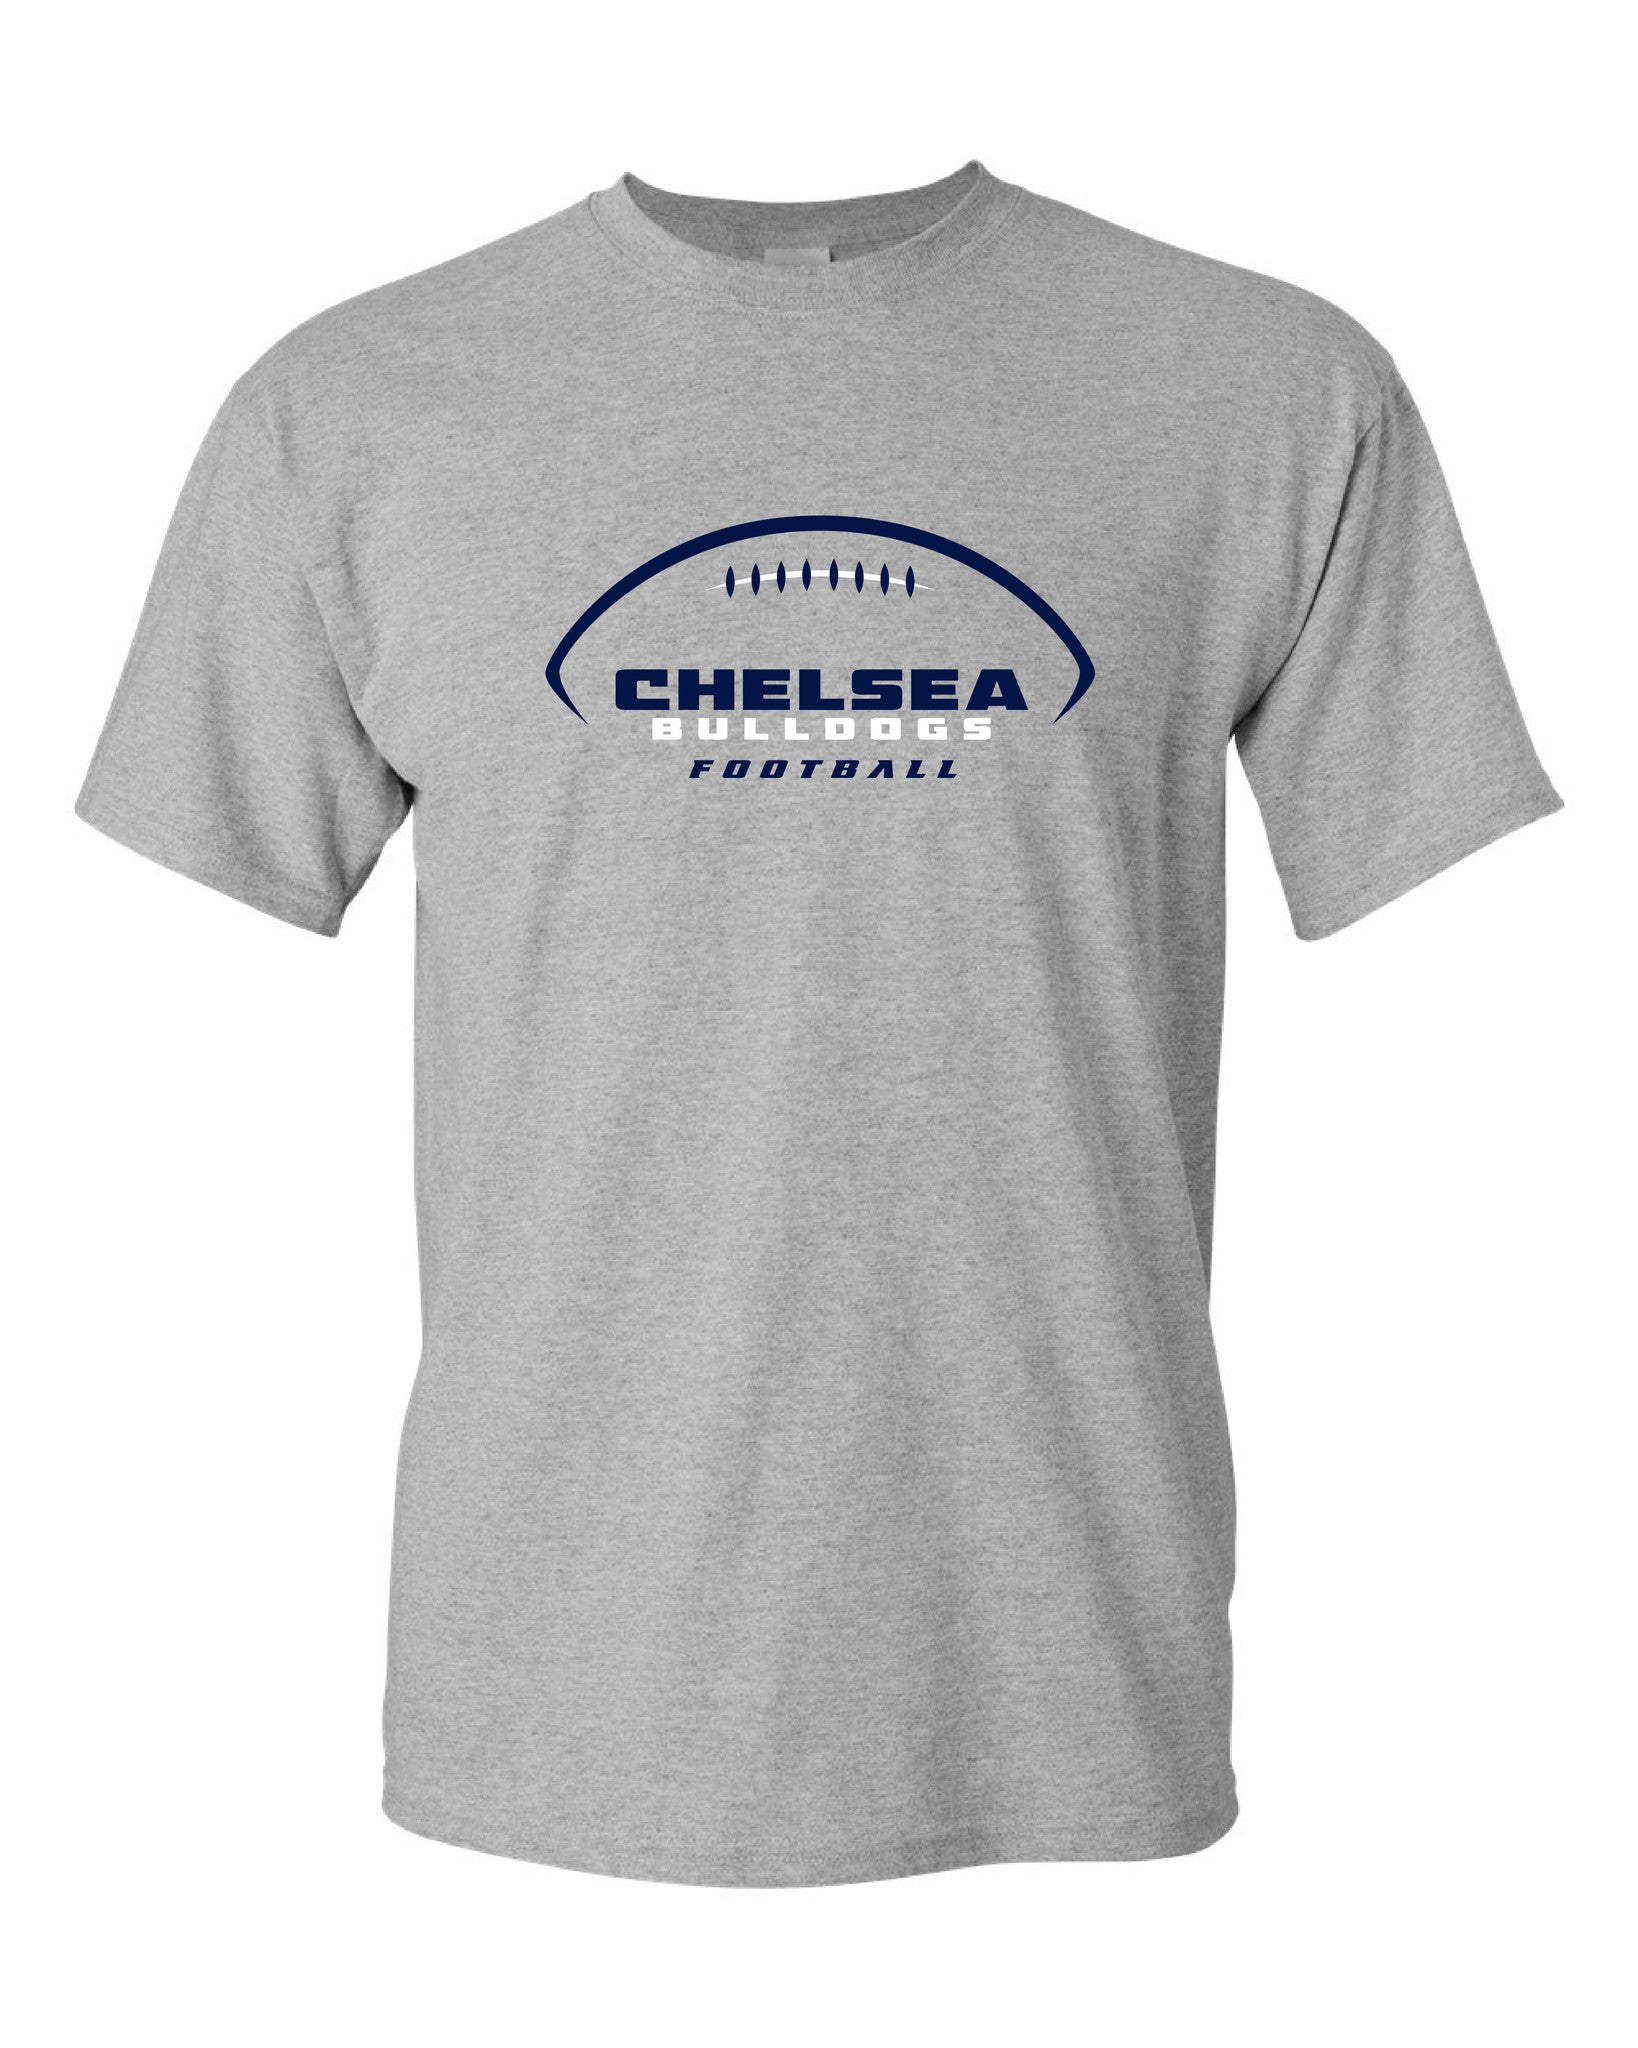 Ladies Chelsea Football T-Shirt - D009